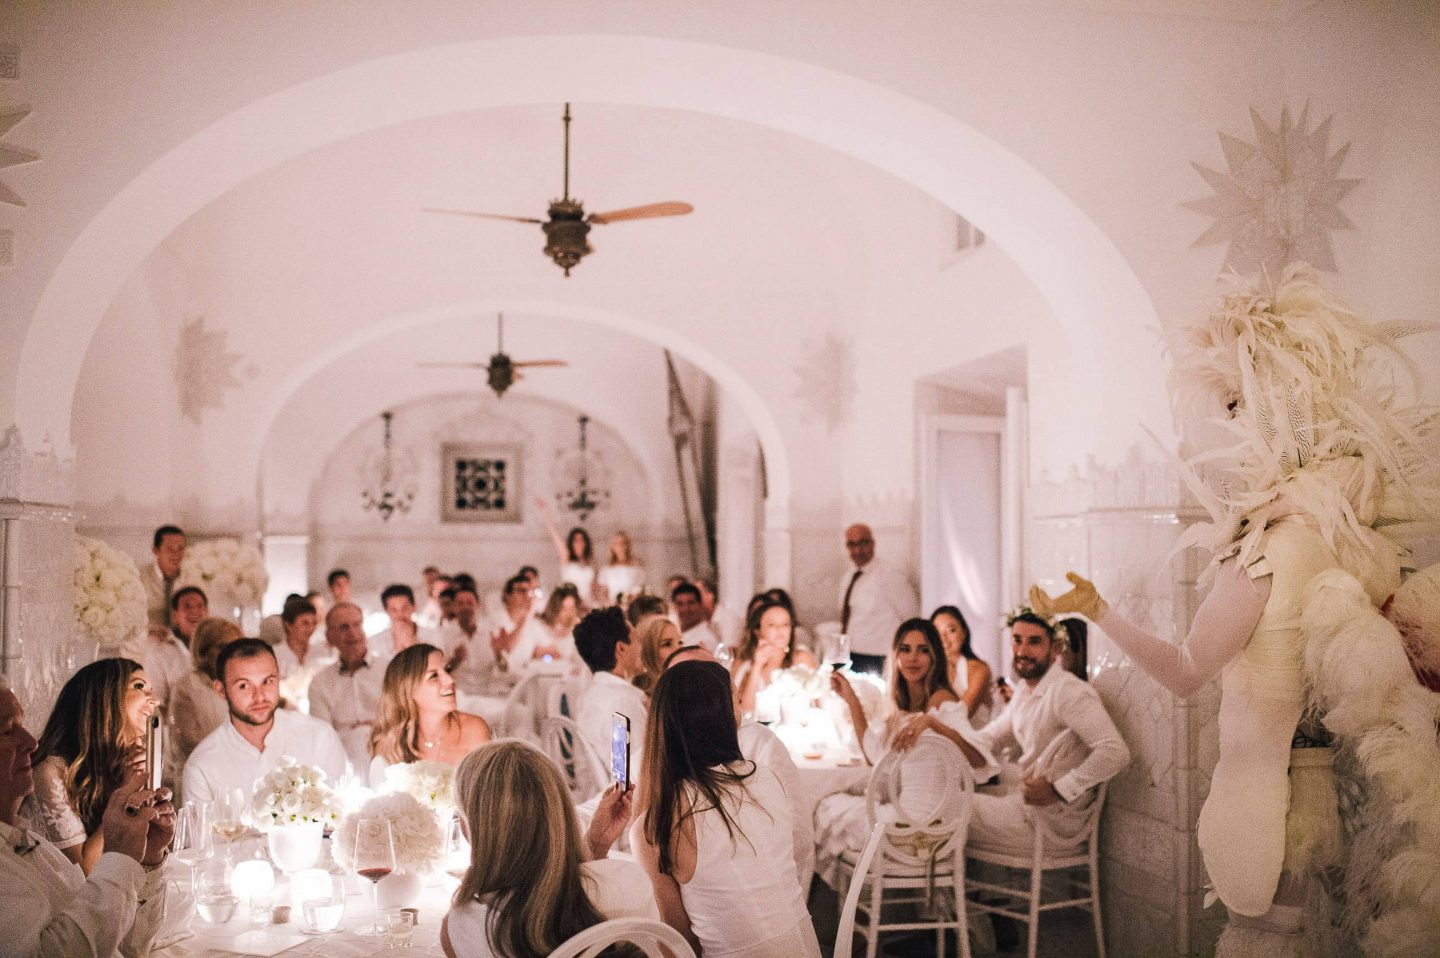 White feather surprise at the Midsummer Night's Eve-themed white welcome party at this Positano wedding weekend in Villa Tre Ville | Photo by Gianni di Natale